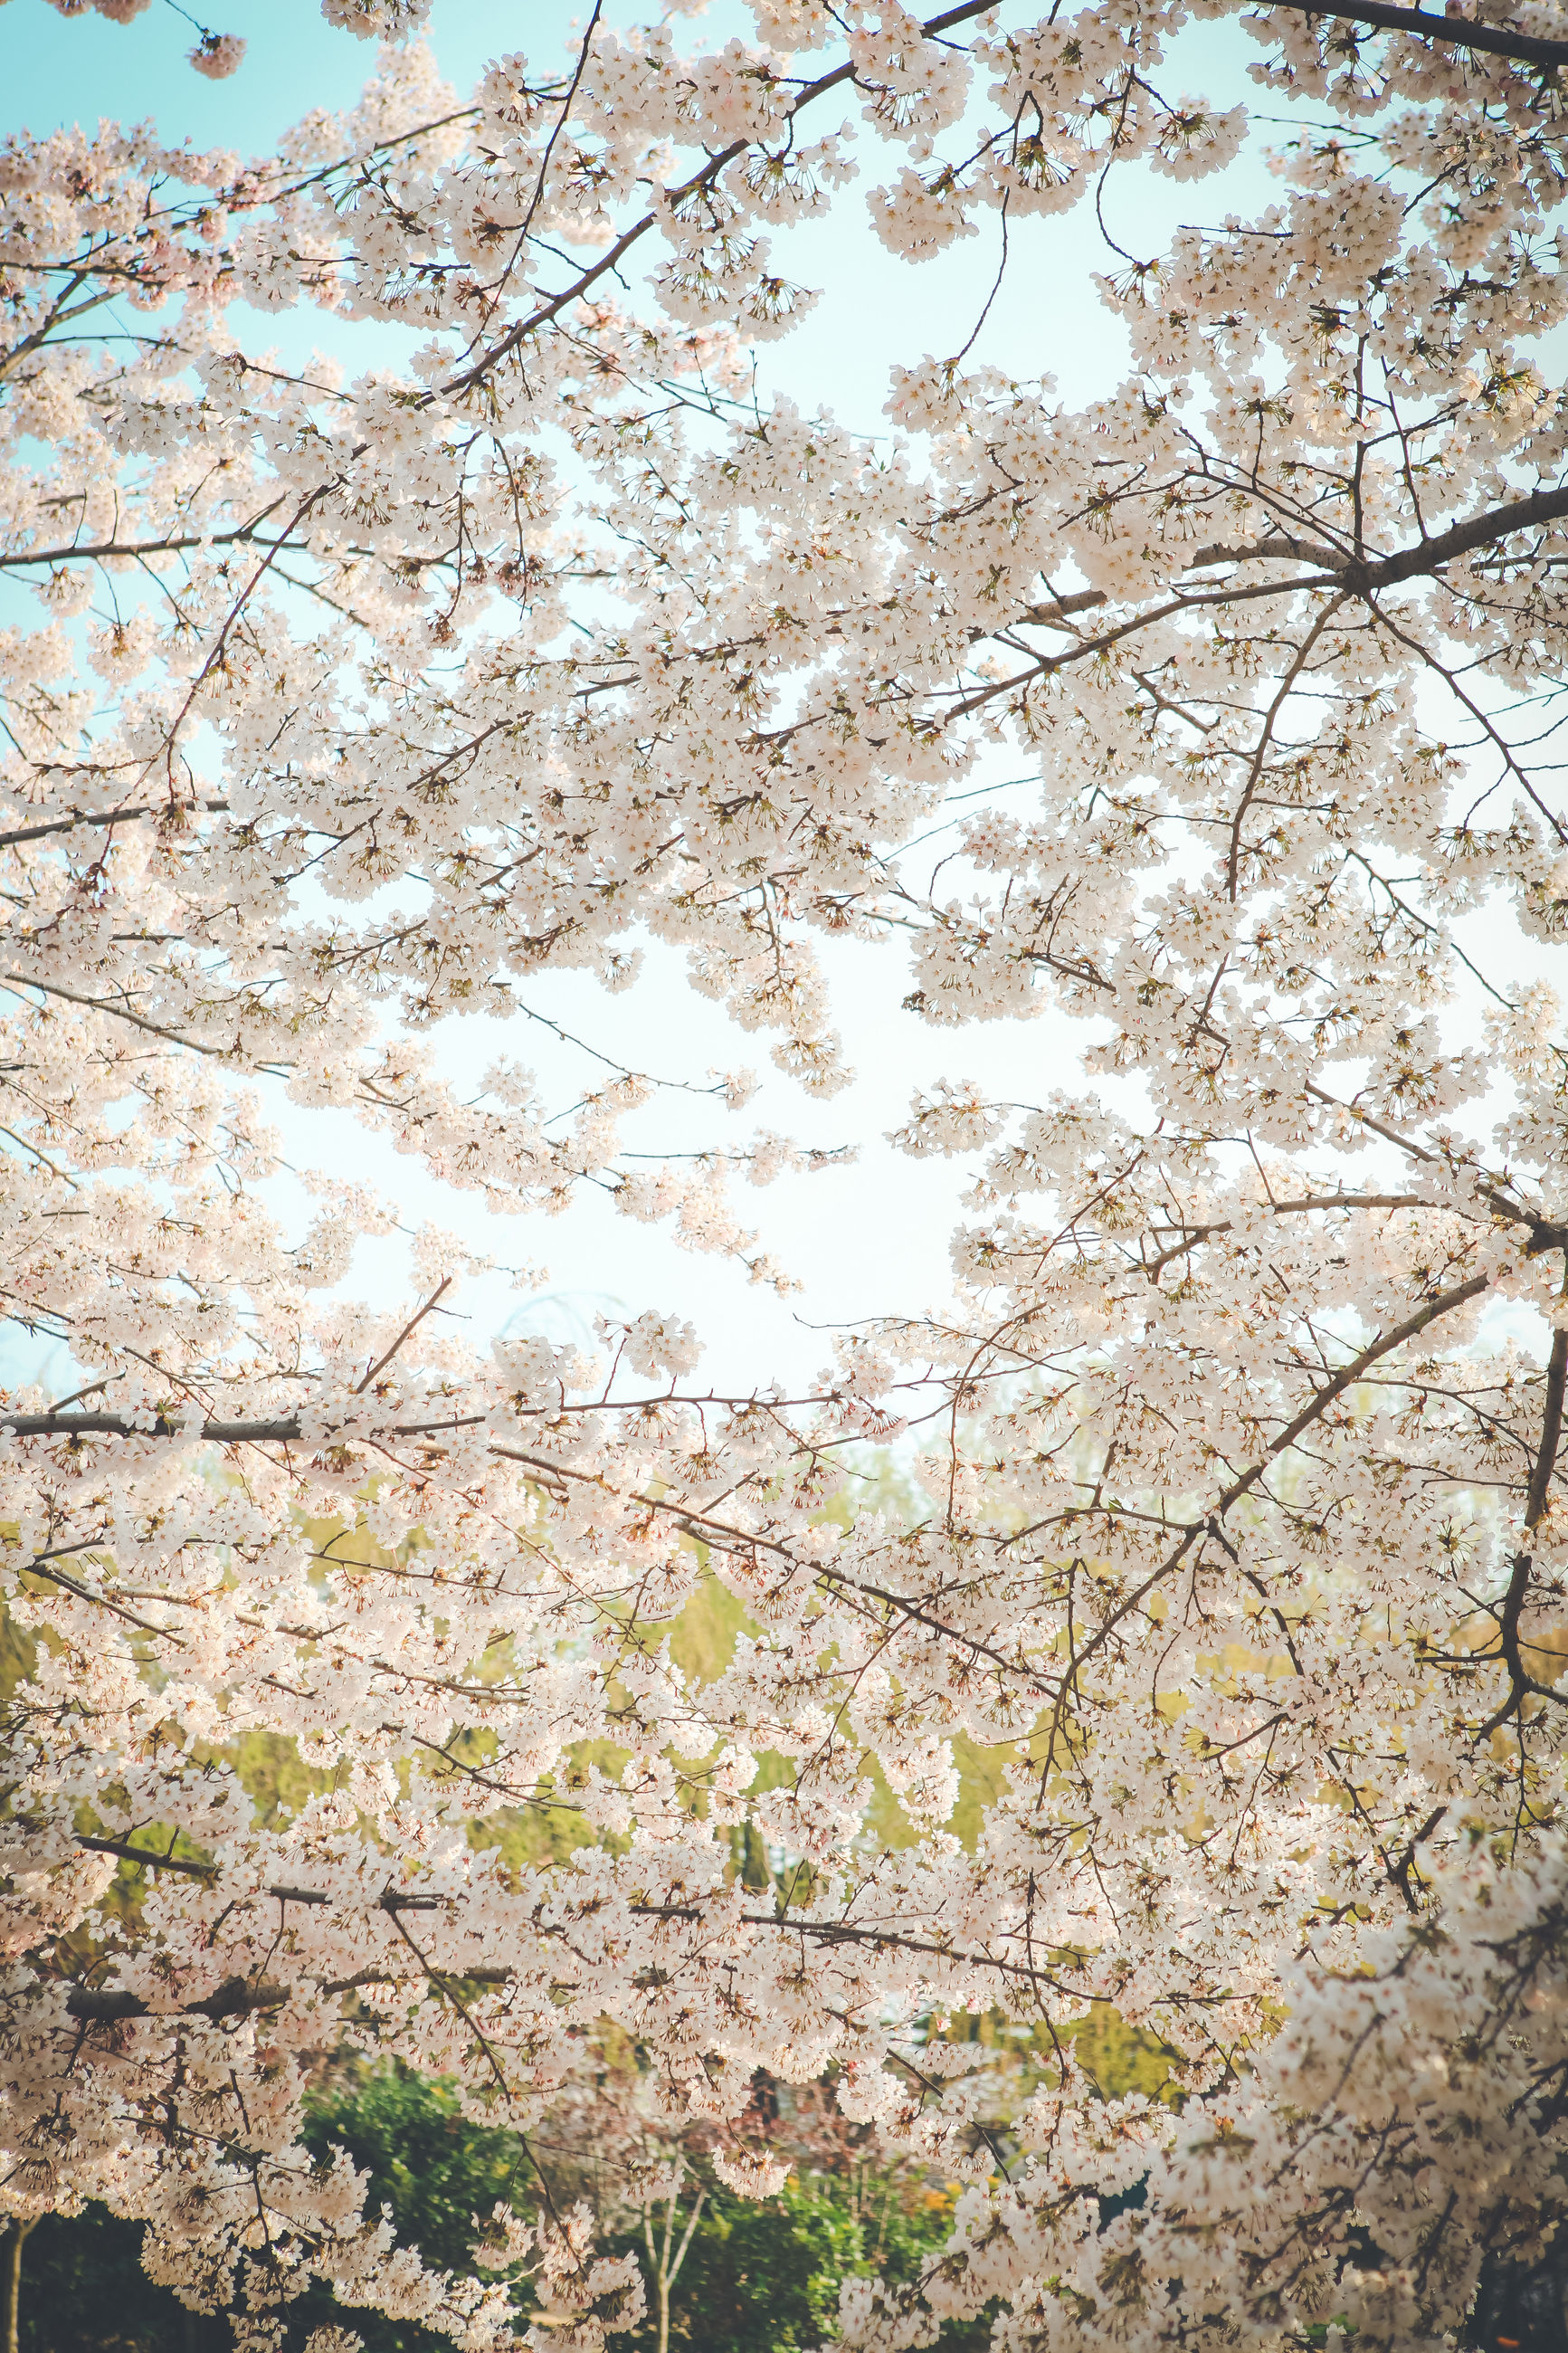 flower, tree, branch, growth, freshness, beauty in nature, nature, fragility, blossom, cherry blossom, springtime, white color, cherry tree, in bloom, day, blooming, low angle view, season, tranquility, petal